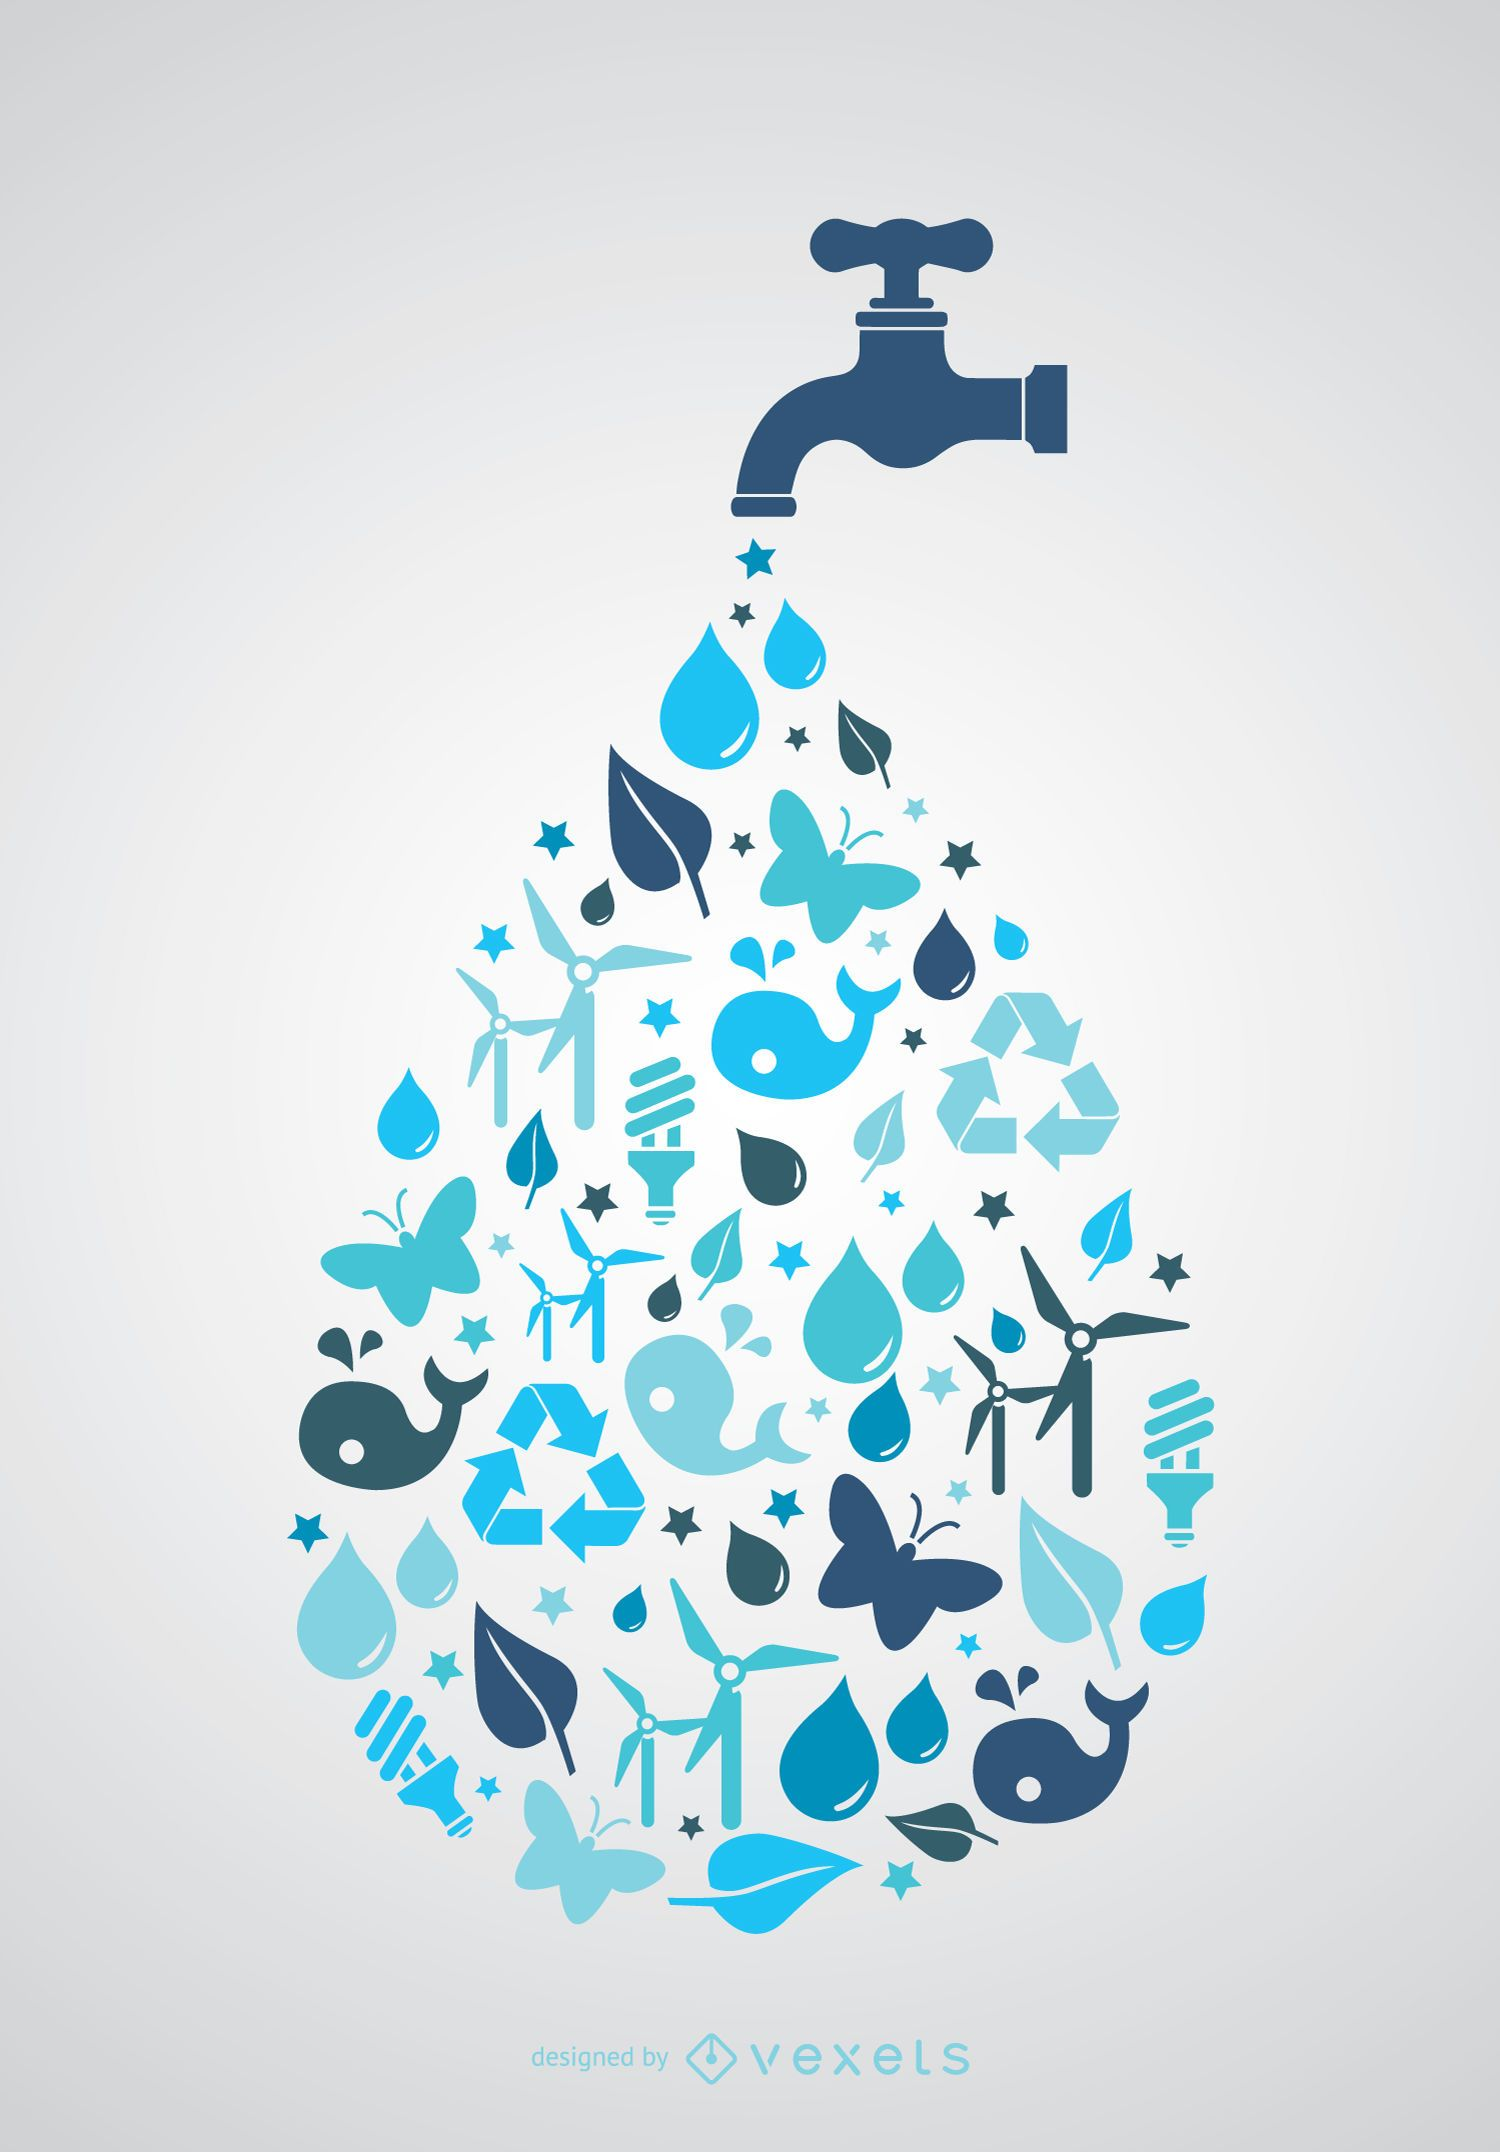 World Water day - Tap with icons